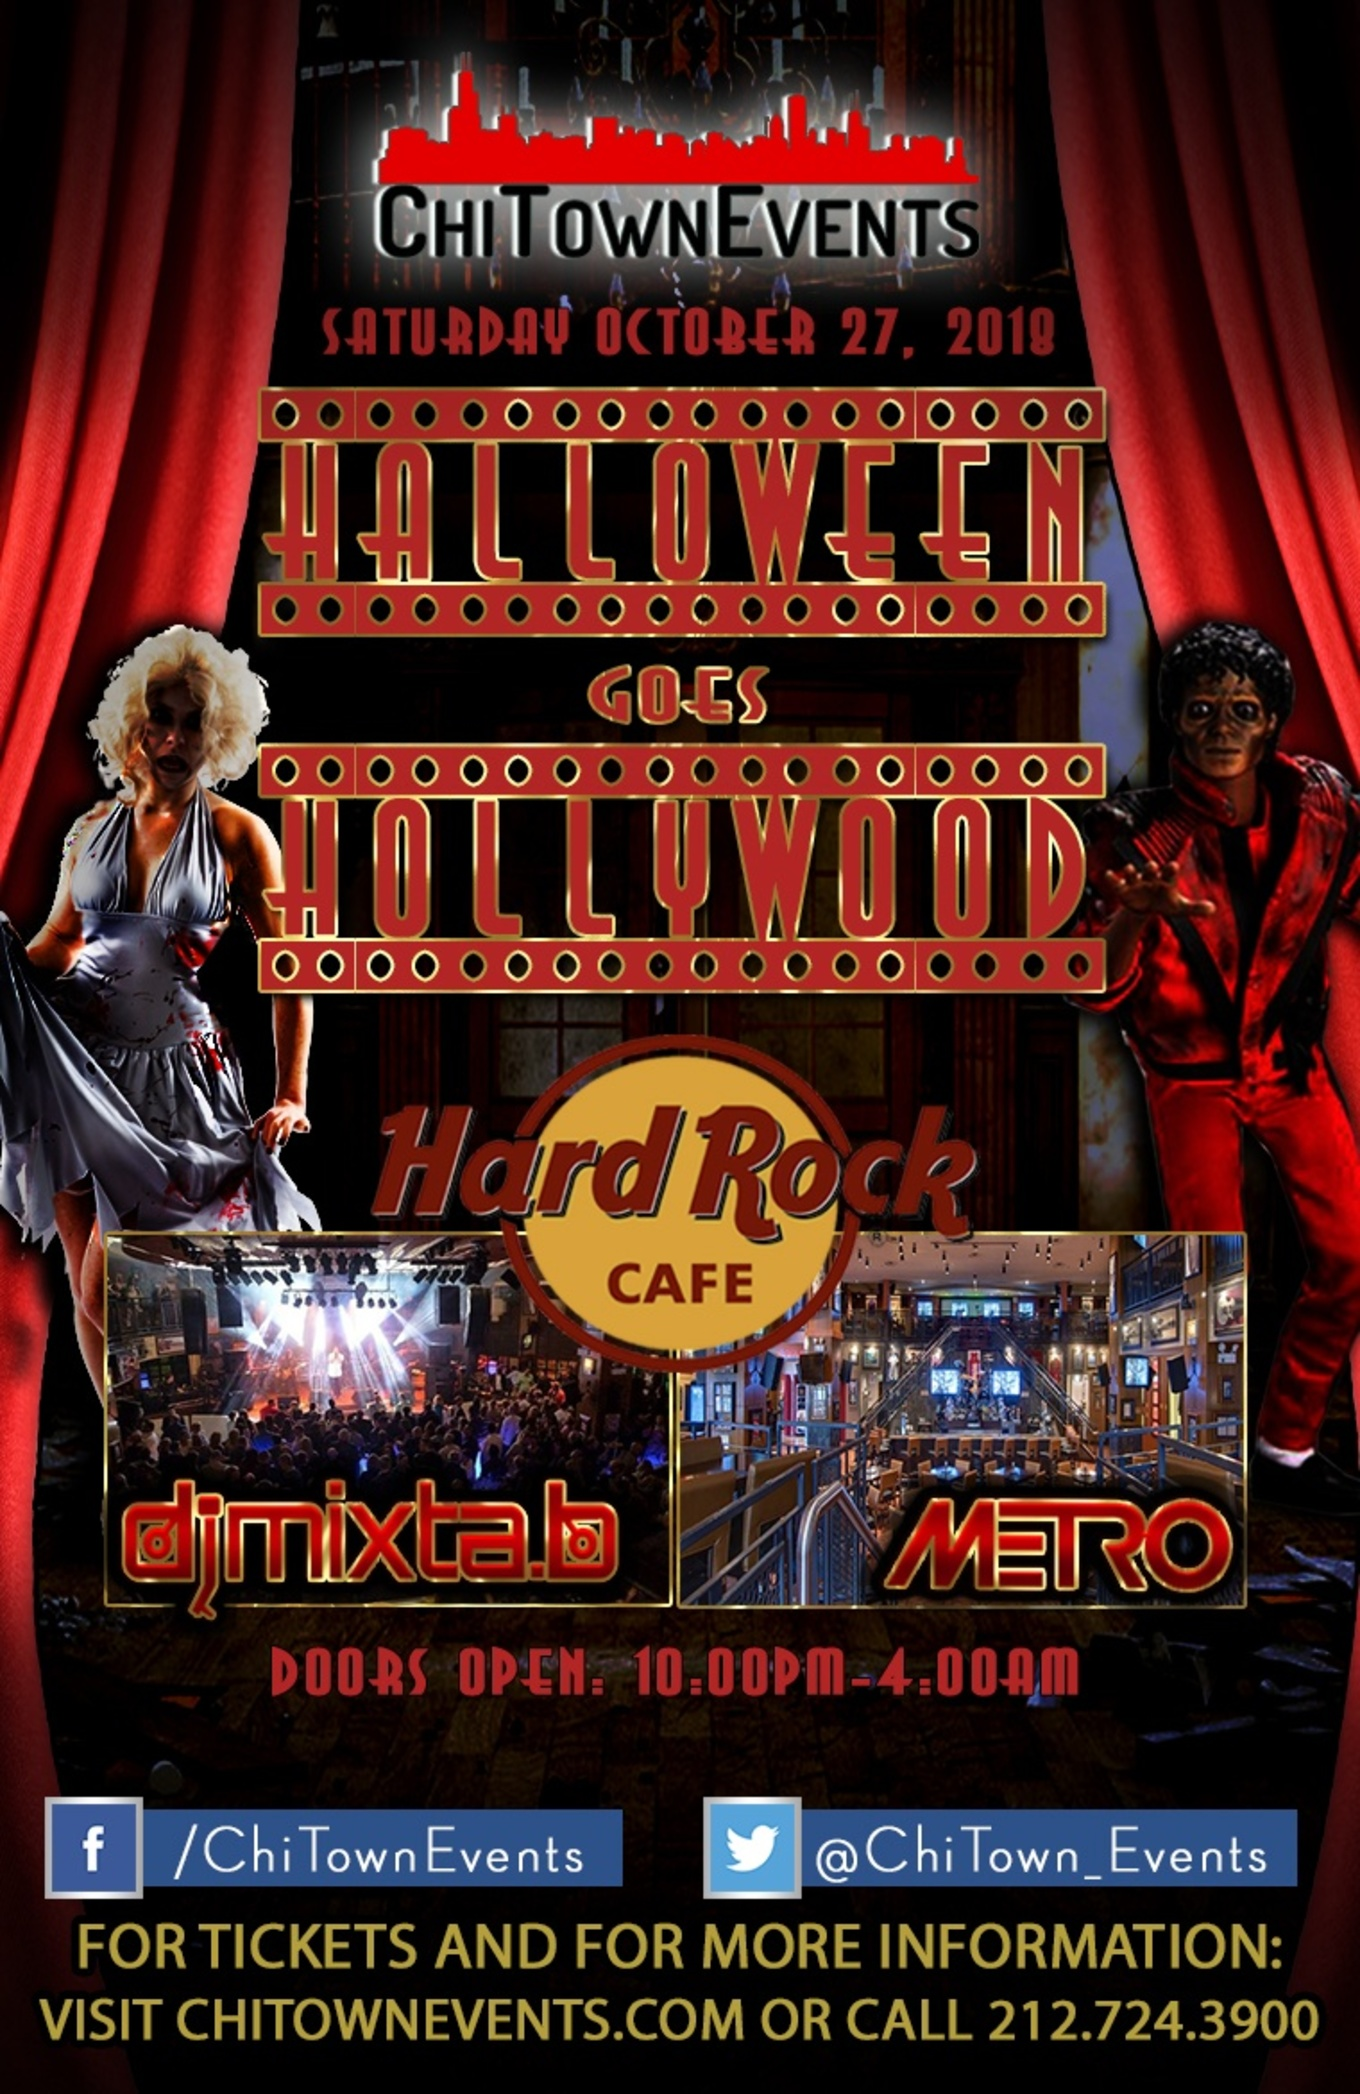 halloween goes hollywood at the hard rock cafe - tickets - the hard